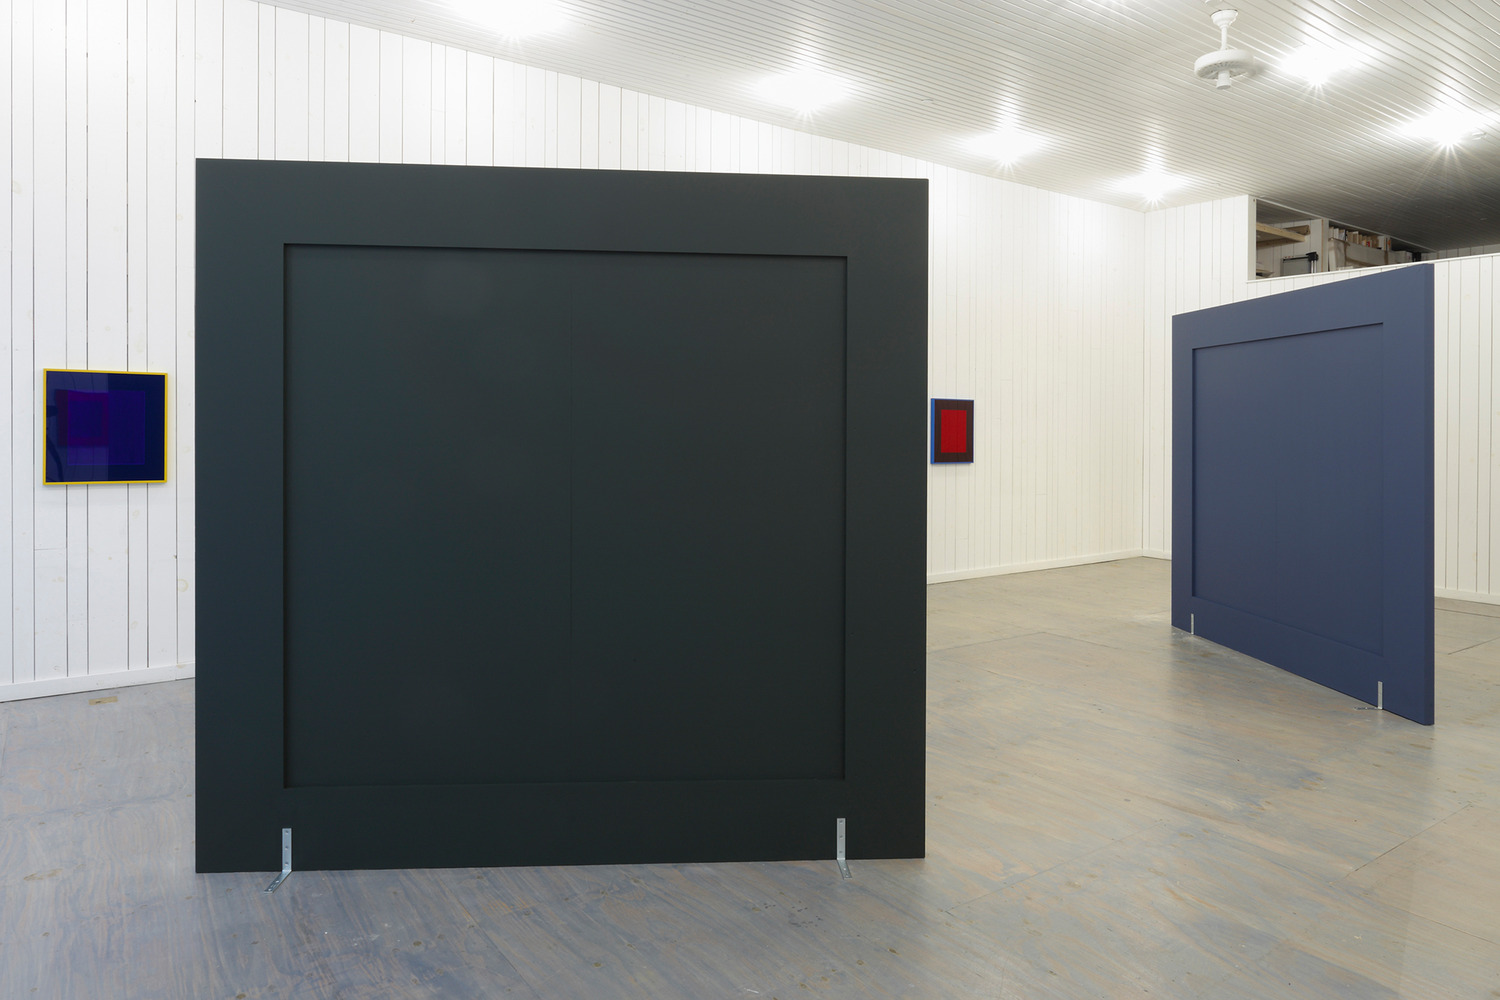 Installation view 'Reverse Telescopes with Inflected Baffles', KARMA, New York, 2013